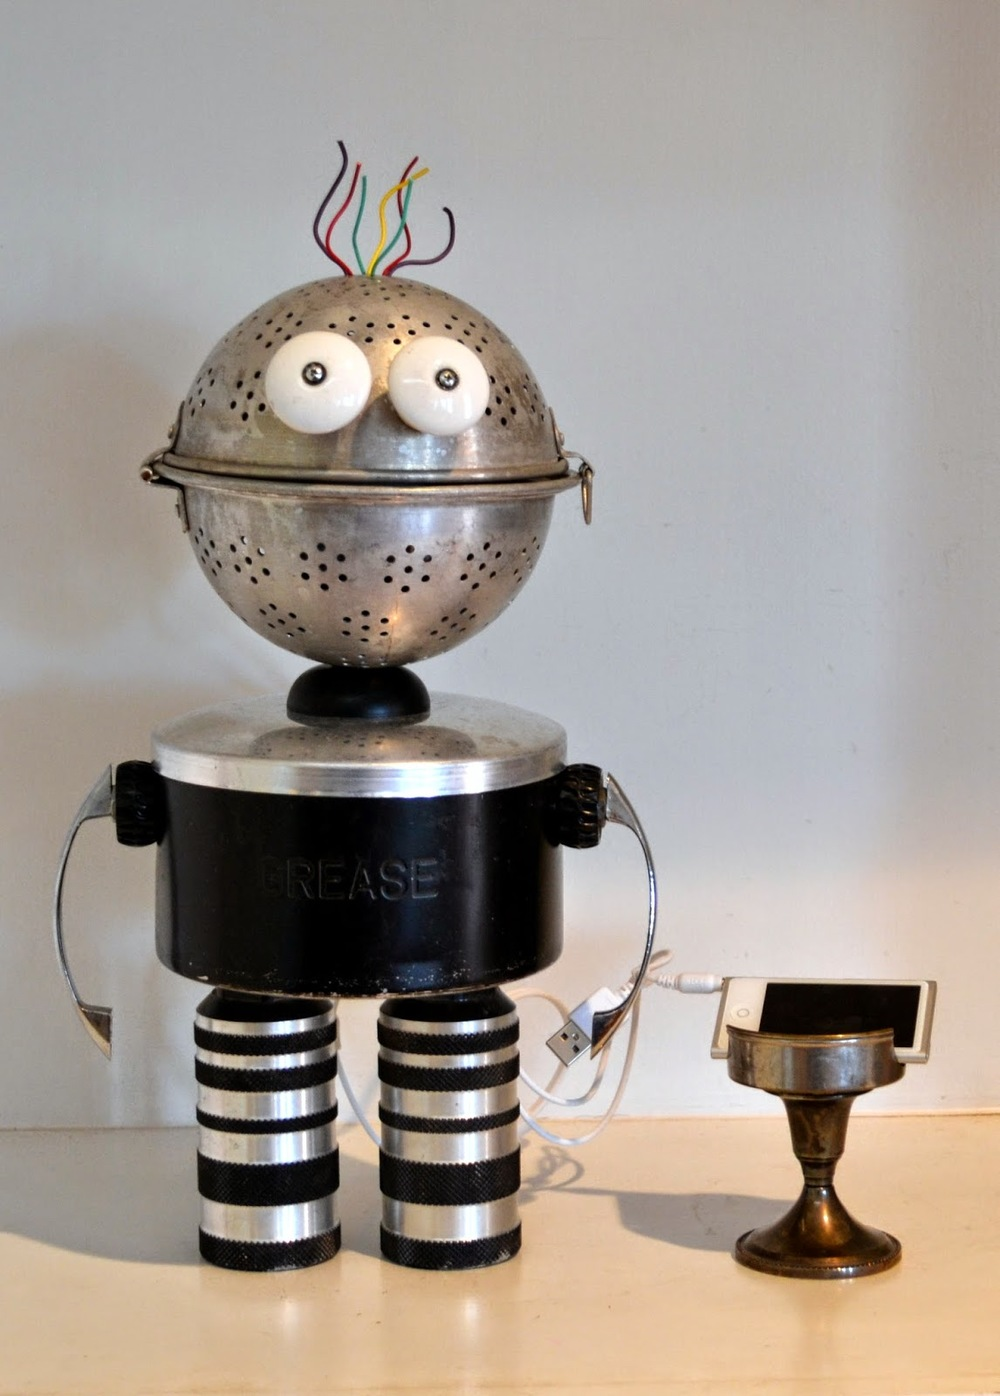 https://www.etsy.com/listing/225889731/dj-bot-a-recycled-robot-and-ipod-player?ref=shop_home_active_1